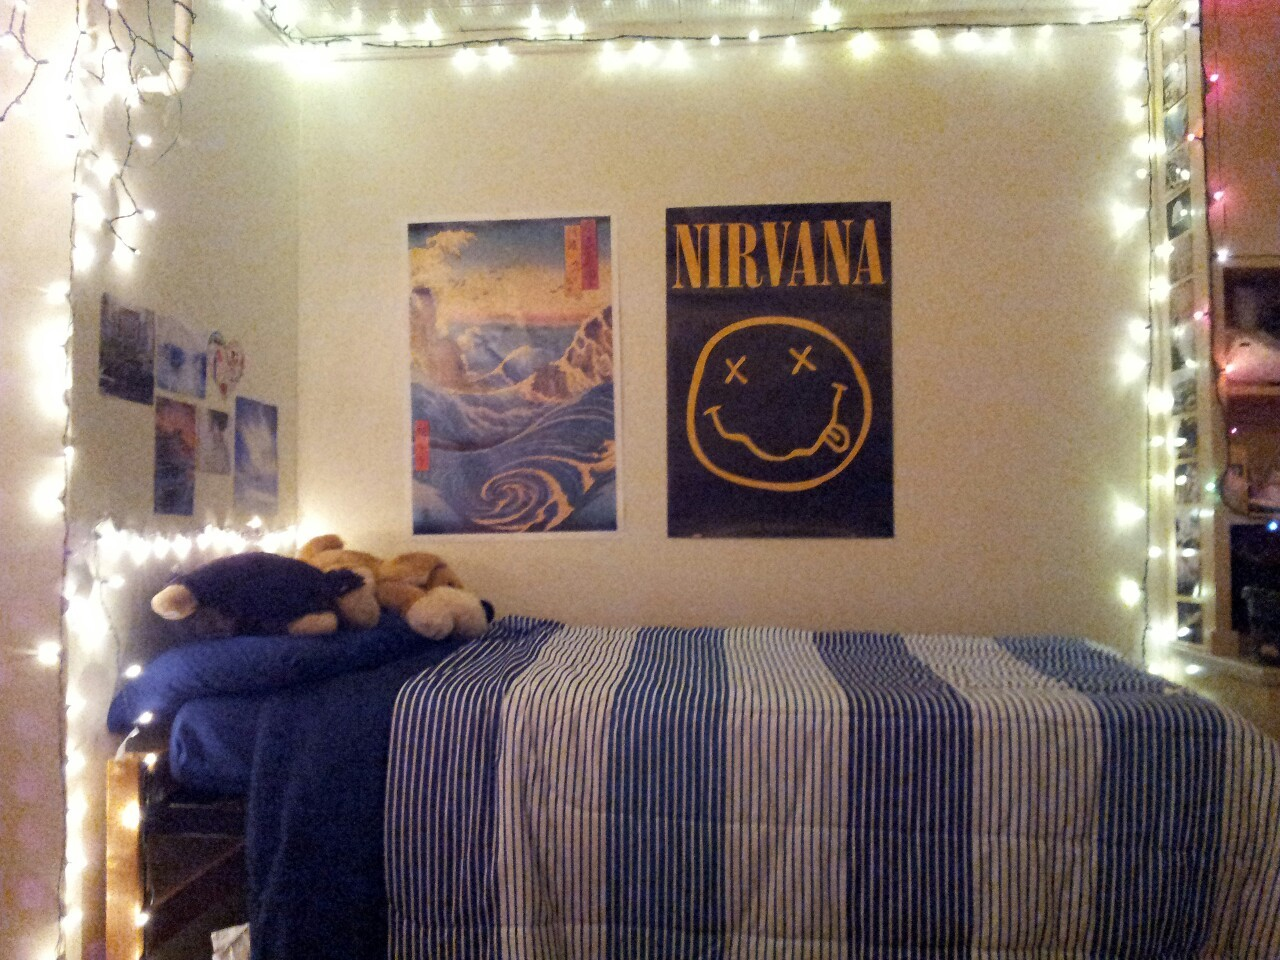 Got around to decorating my dorm somewhat. Now it finally has some semblance of home. :)